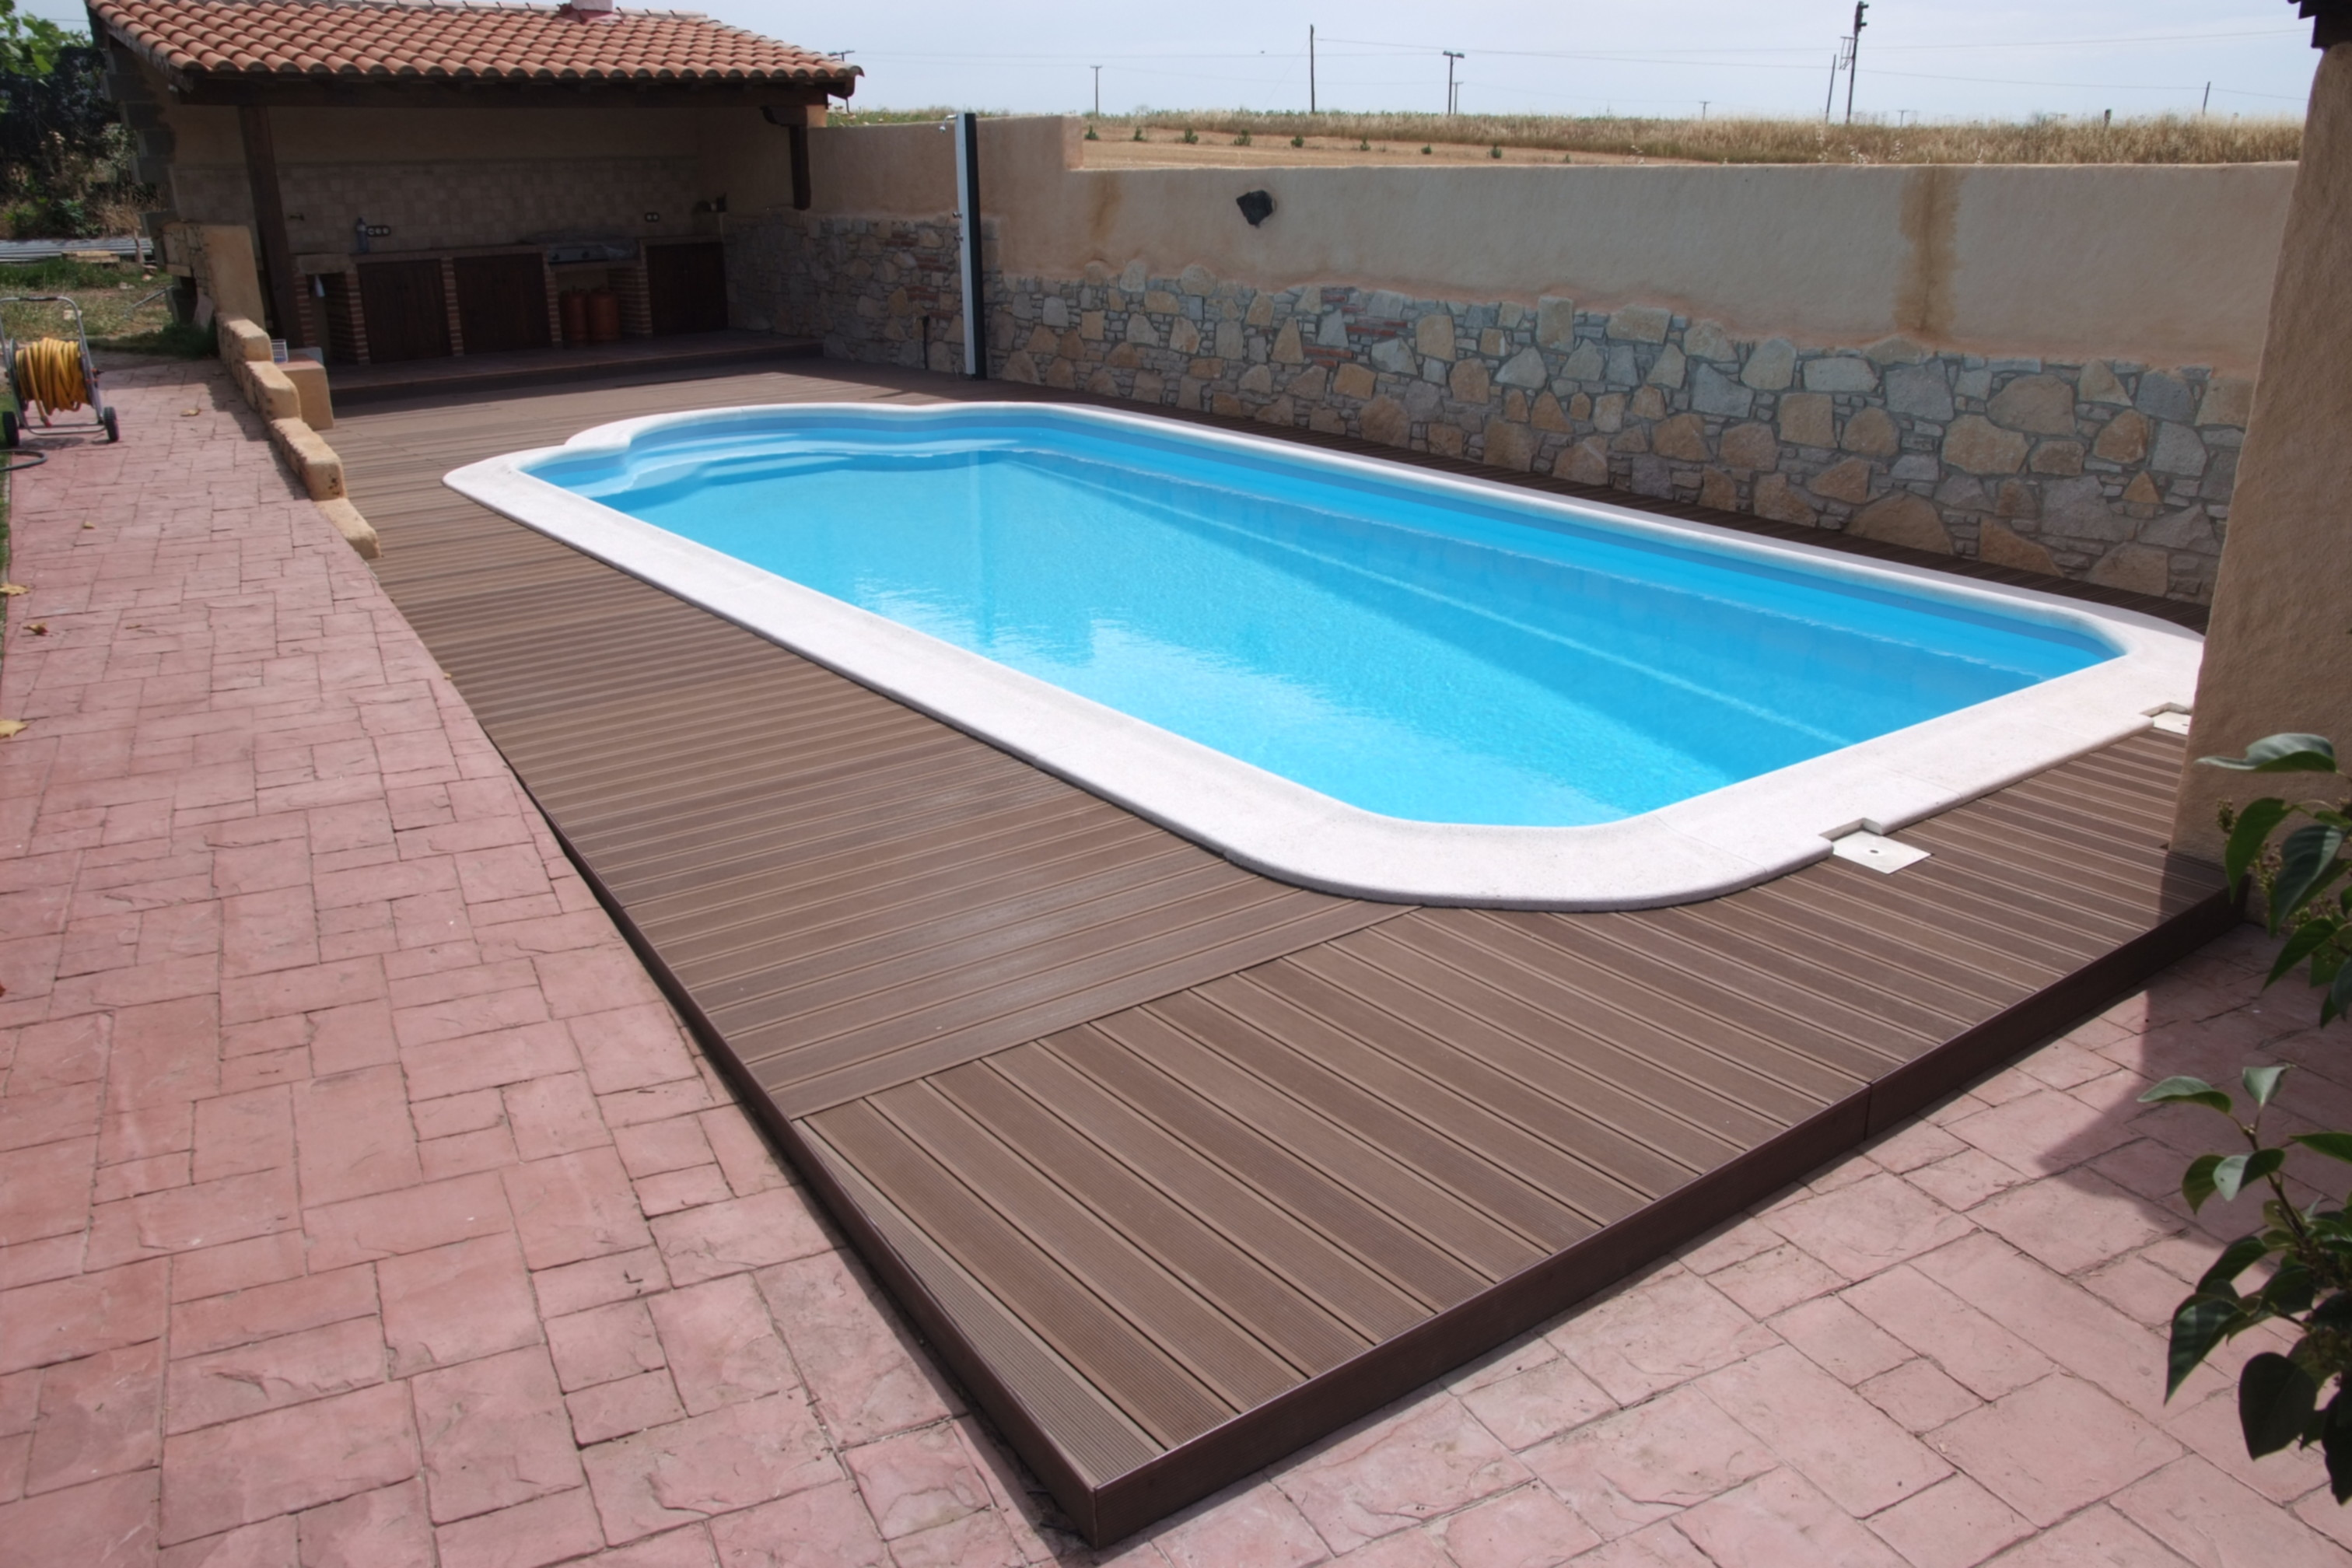 Bordes de piscina indeformables de madera sint tica for Piscinas de madera